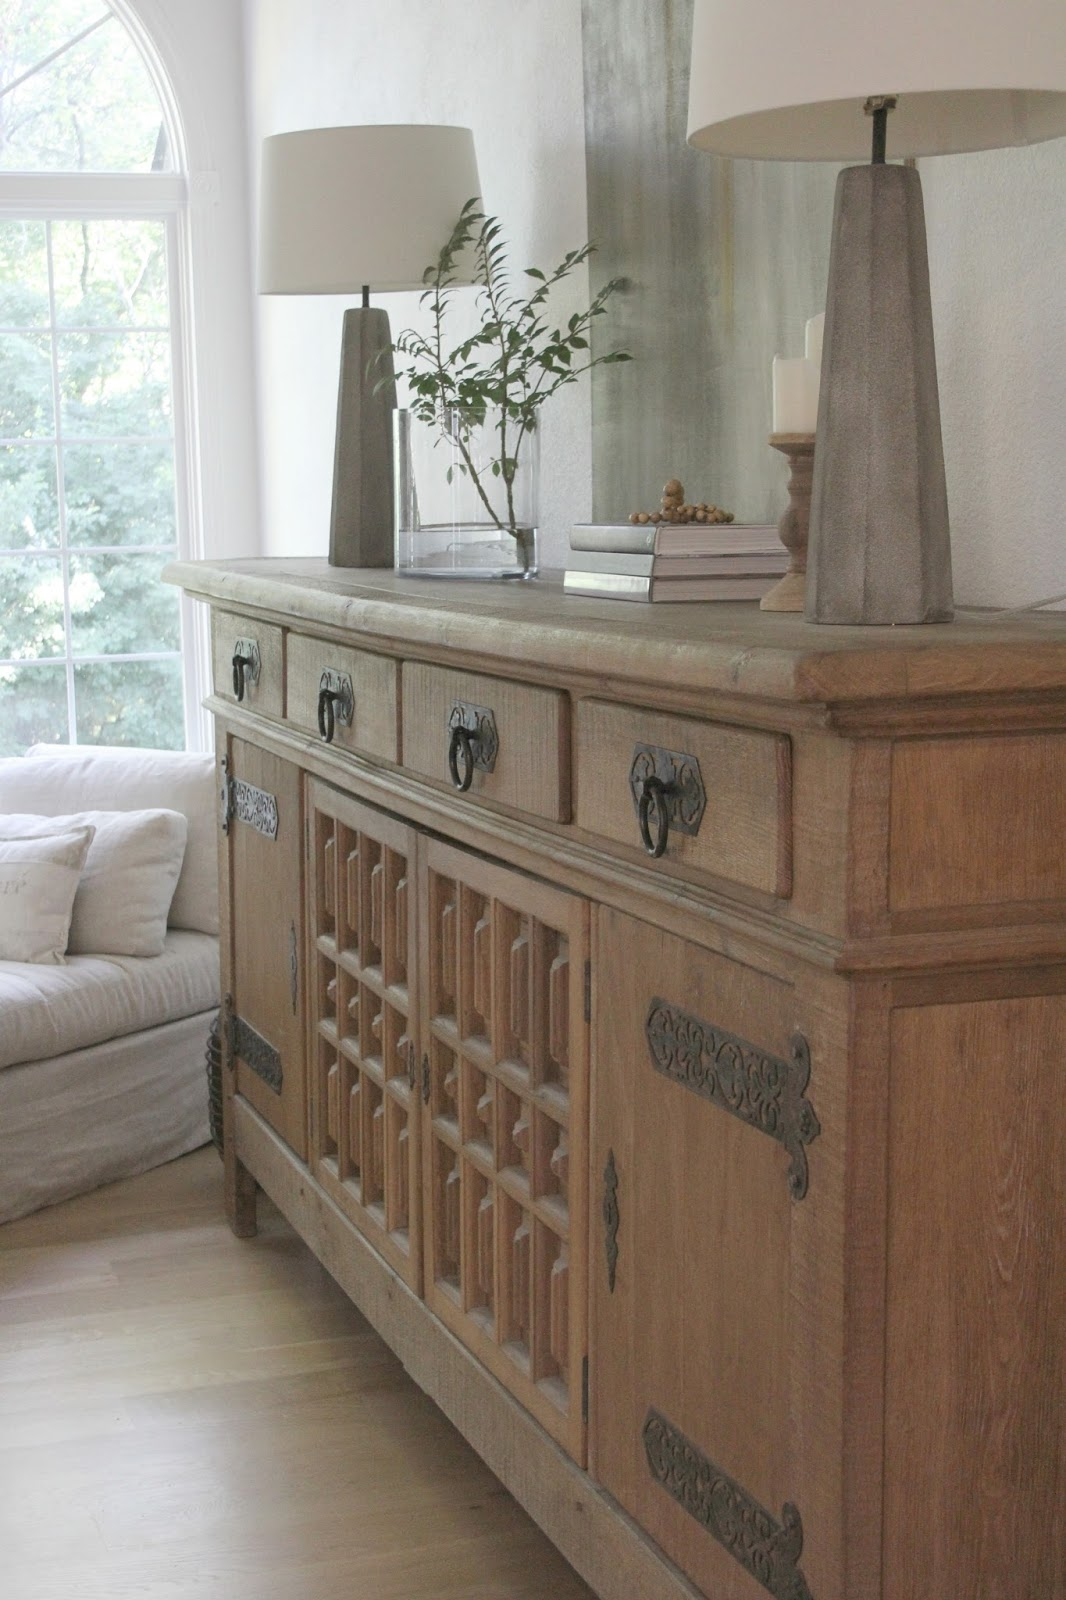 Rustic oak Belgian antique cupboard in European country styled living room by Hello Lovely Studio.  Come see: Best White Paint Colors: 6 Favorites Designers Turn To in case you need paint color ideas. #hellolovelystudio #europeancountry #livingroom